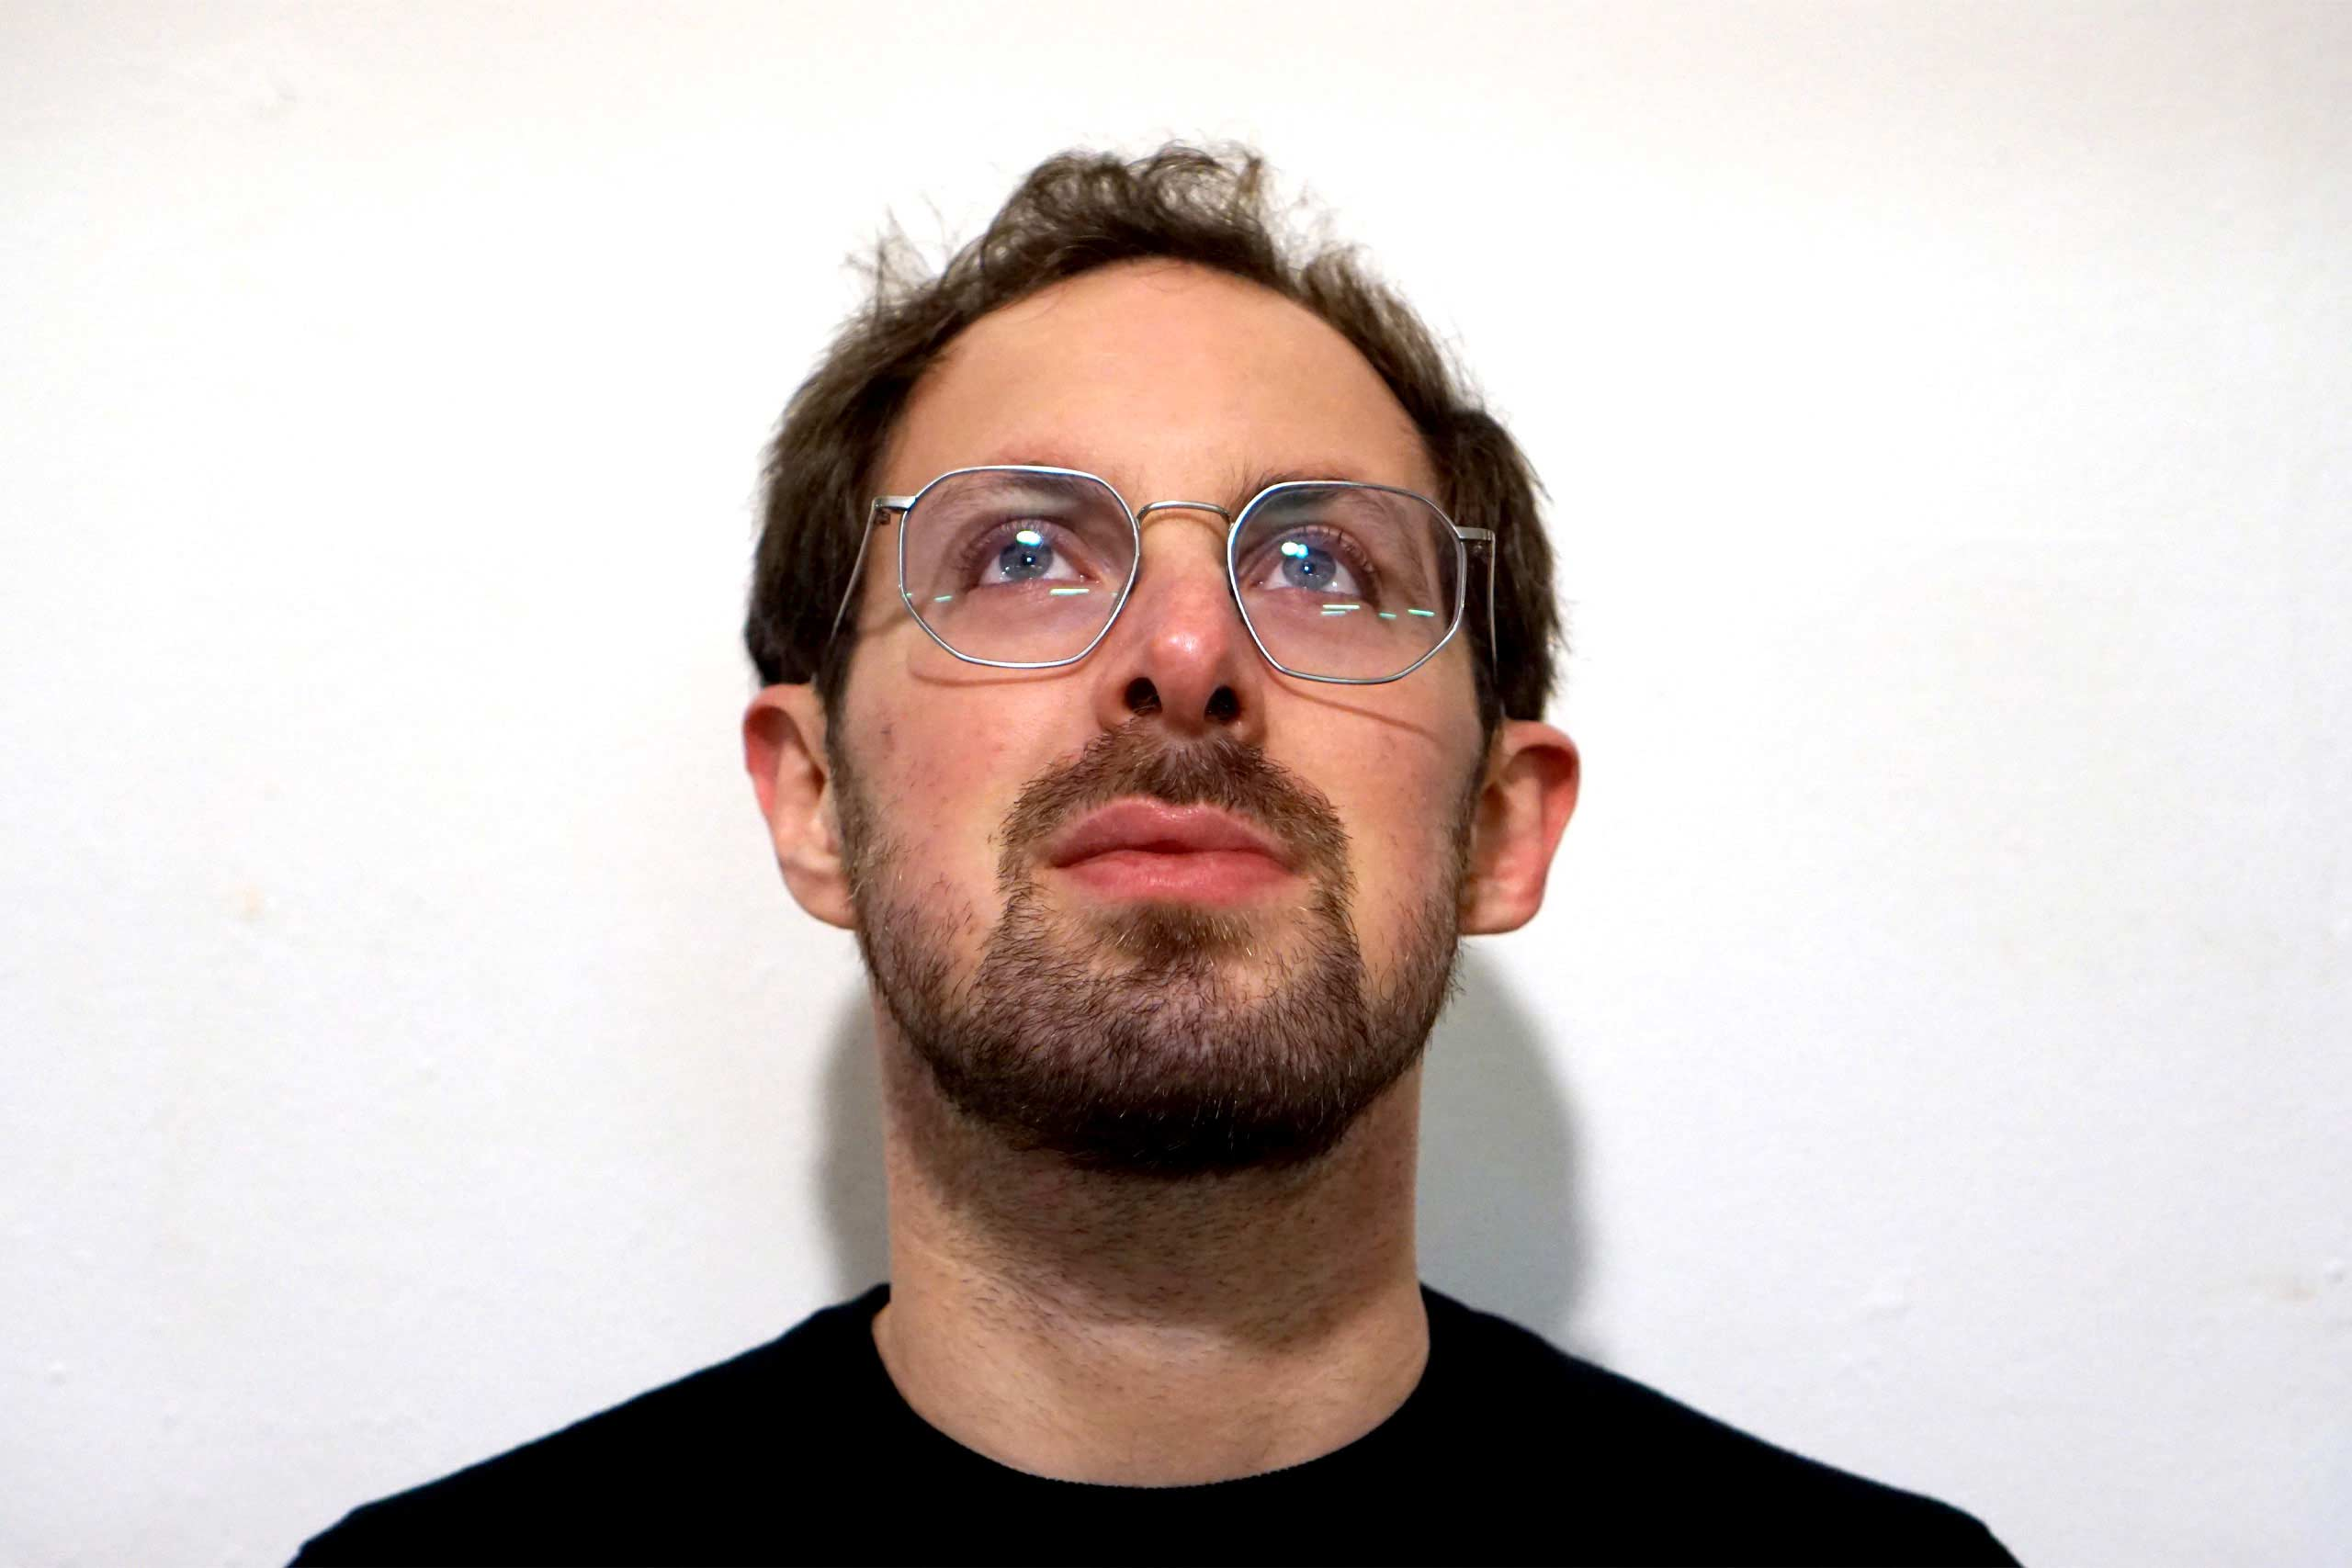 Act Attack teacher Isaac Lester Simon. Man, white, brown hair, blue eyes, beard, black top, grey metal glasses. He's looking up.